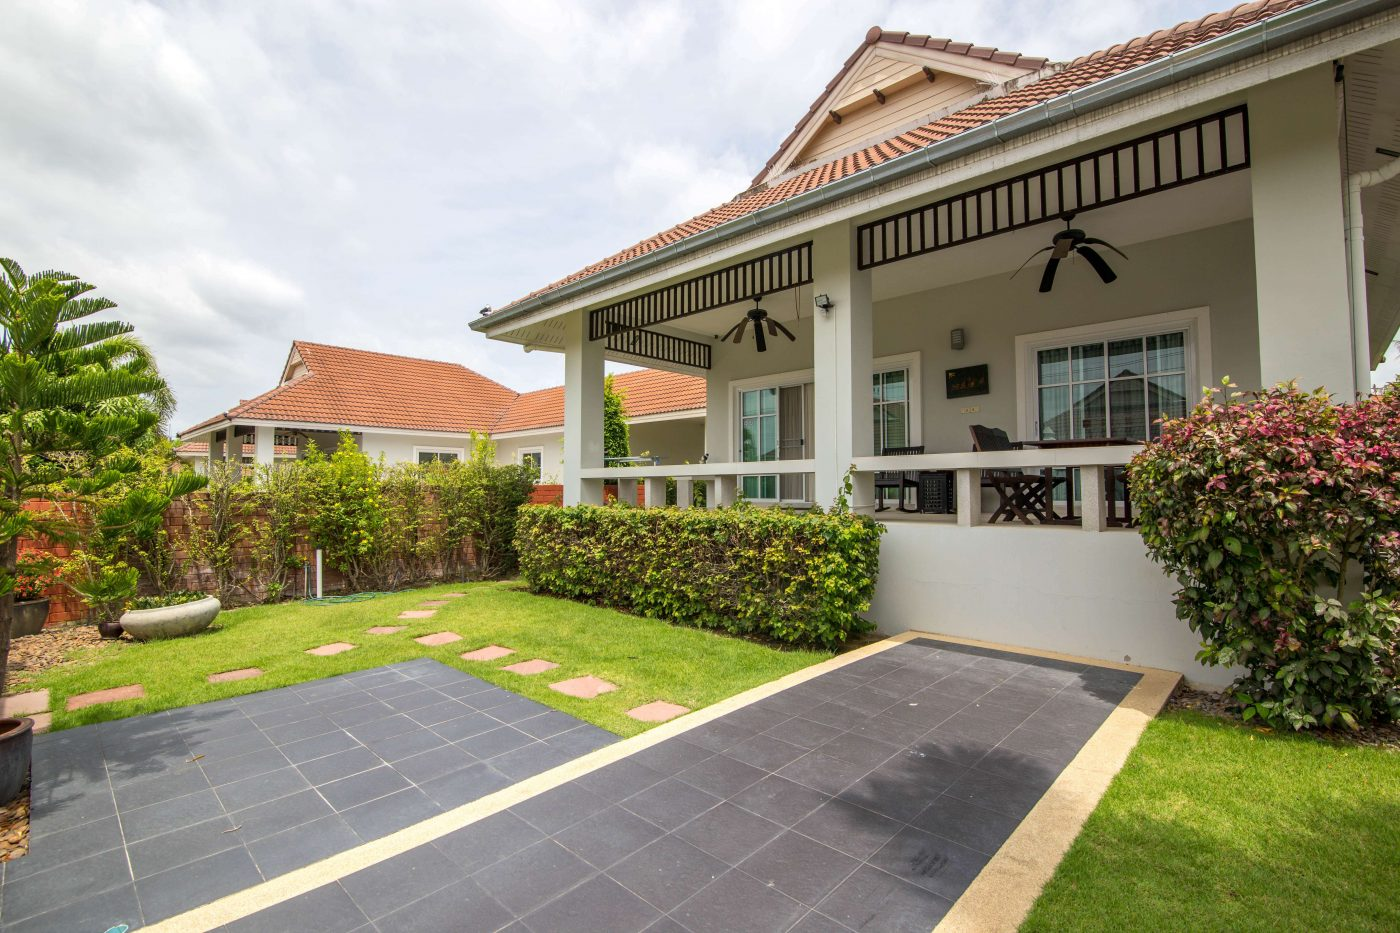 2 Bedrooms Villa for Rent at Smart House Village Soi 88